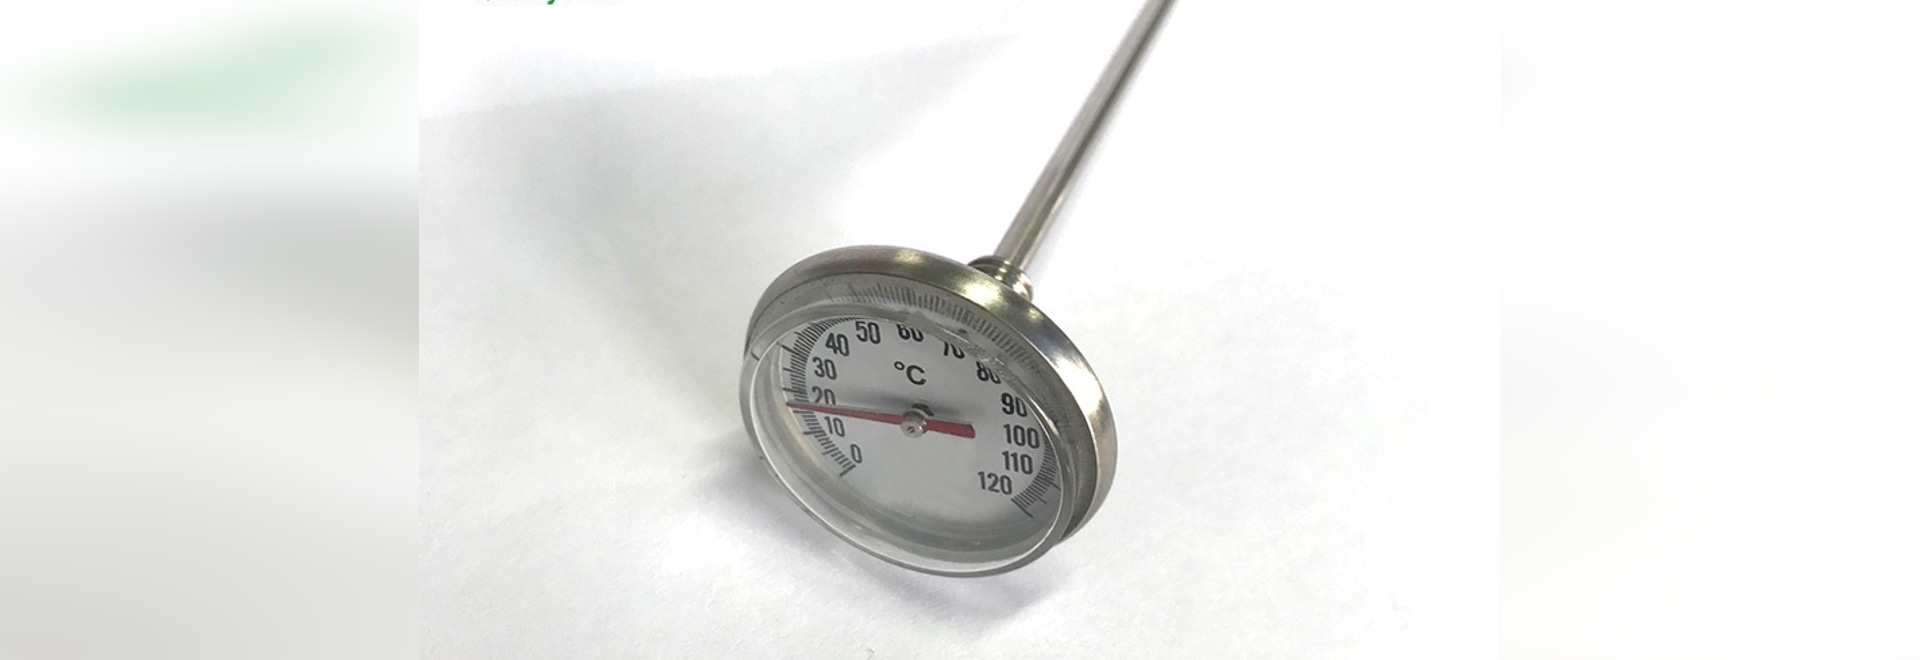 How to get the correct temperature of the bi-metal thermometer